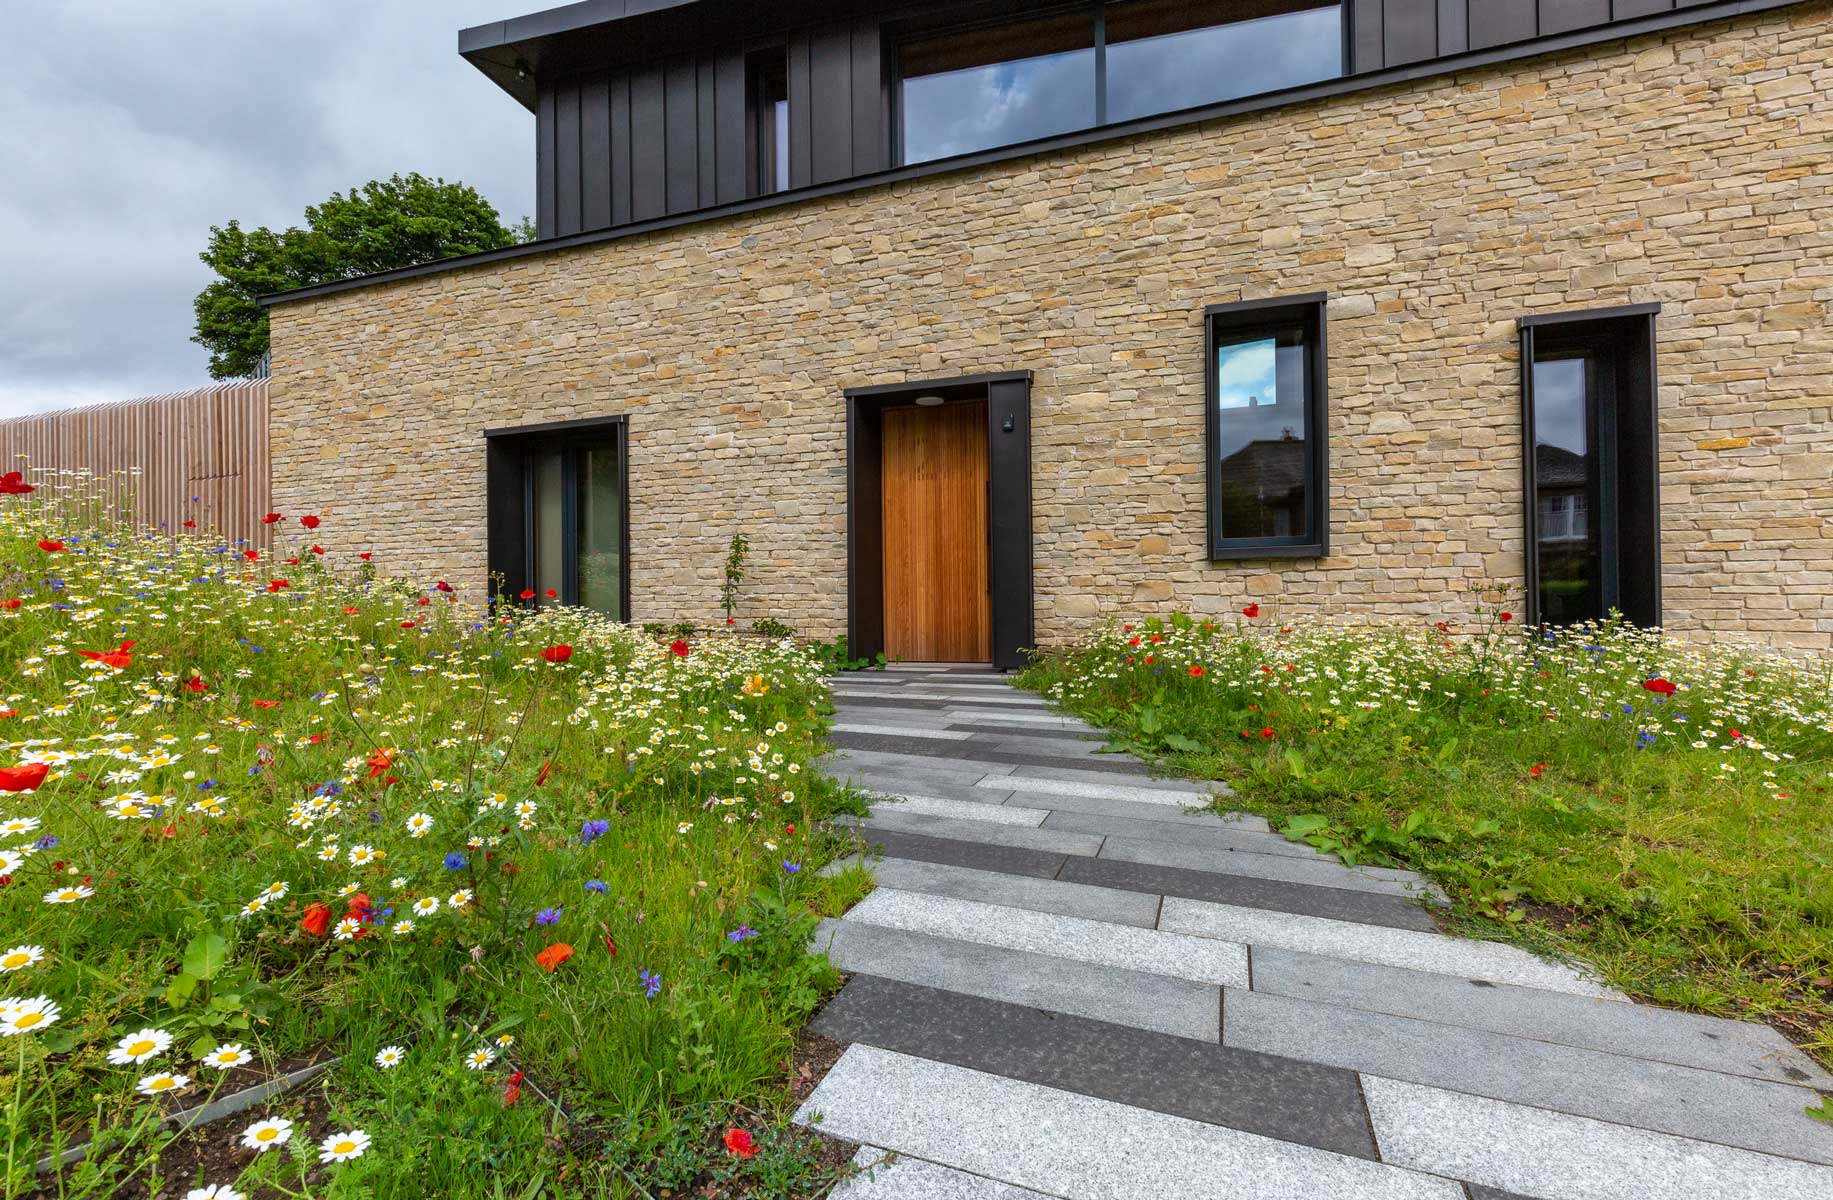 Garden design, landscaping, patio, paths & steps Observatory Road, Edinburgh 2018 using Marshalls Fairstone Granite Eclipse Light, Dark & Graphite, Marshalls Fairstone Granite Eclipse bull-nosed step units Dark, Marshalls Grassguard Earth Brown, wild flower meadow, Weatherpoint 365 Grey